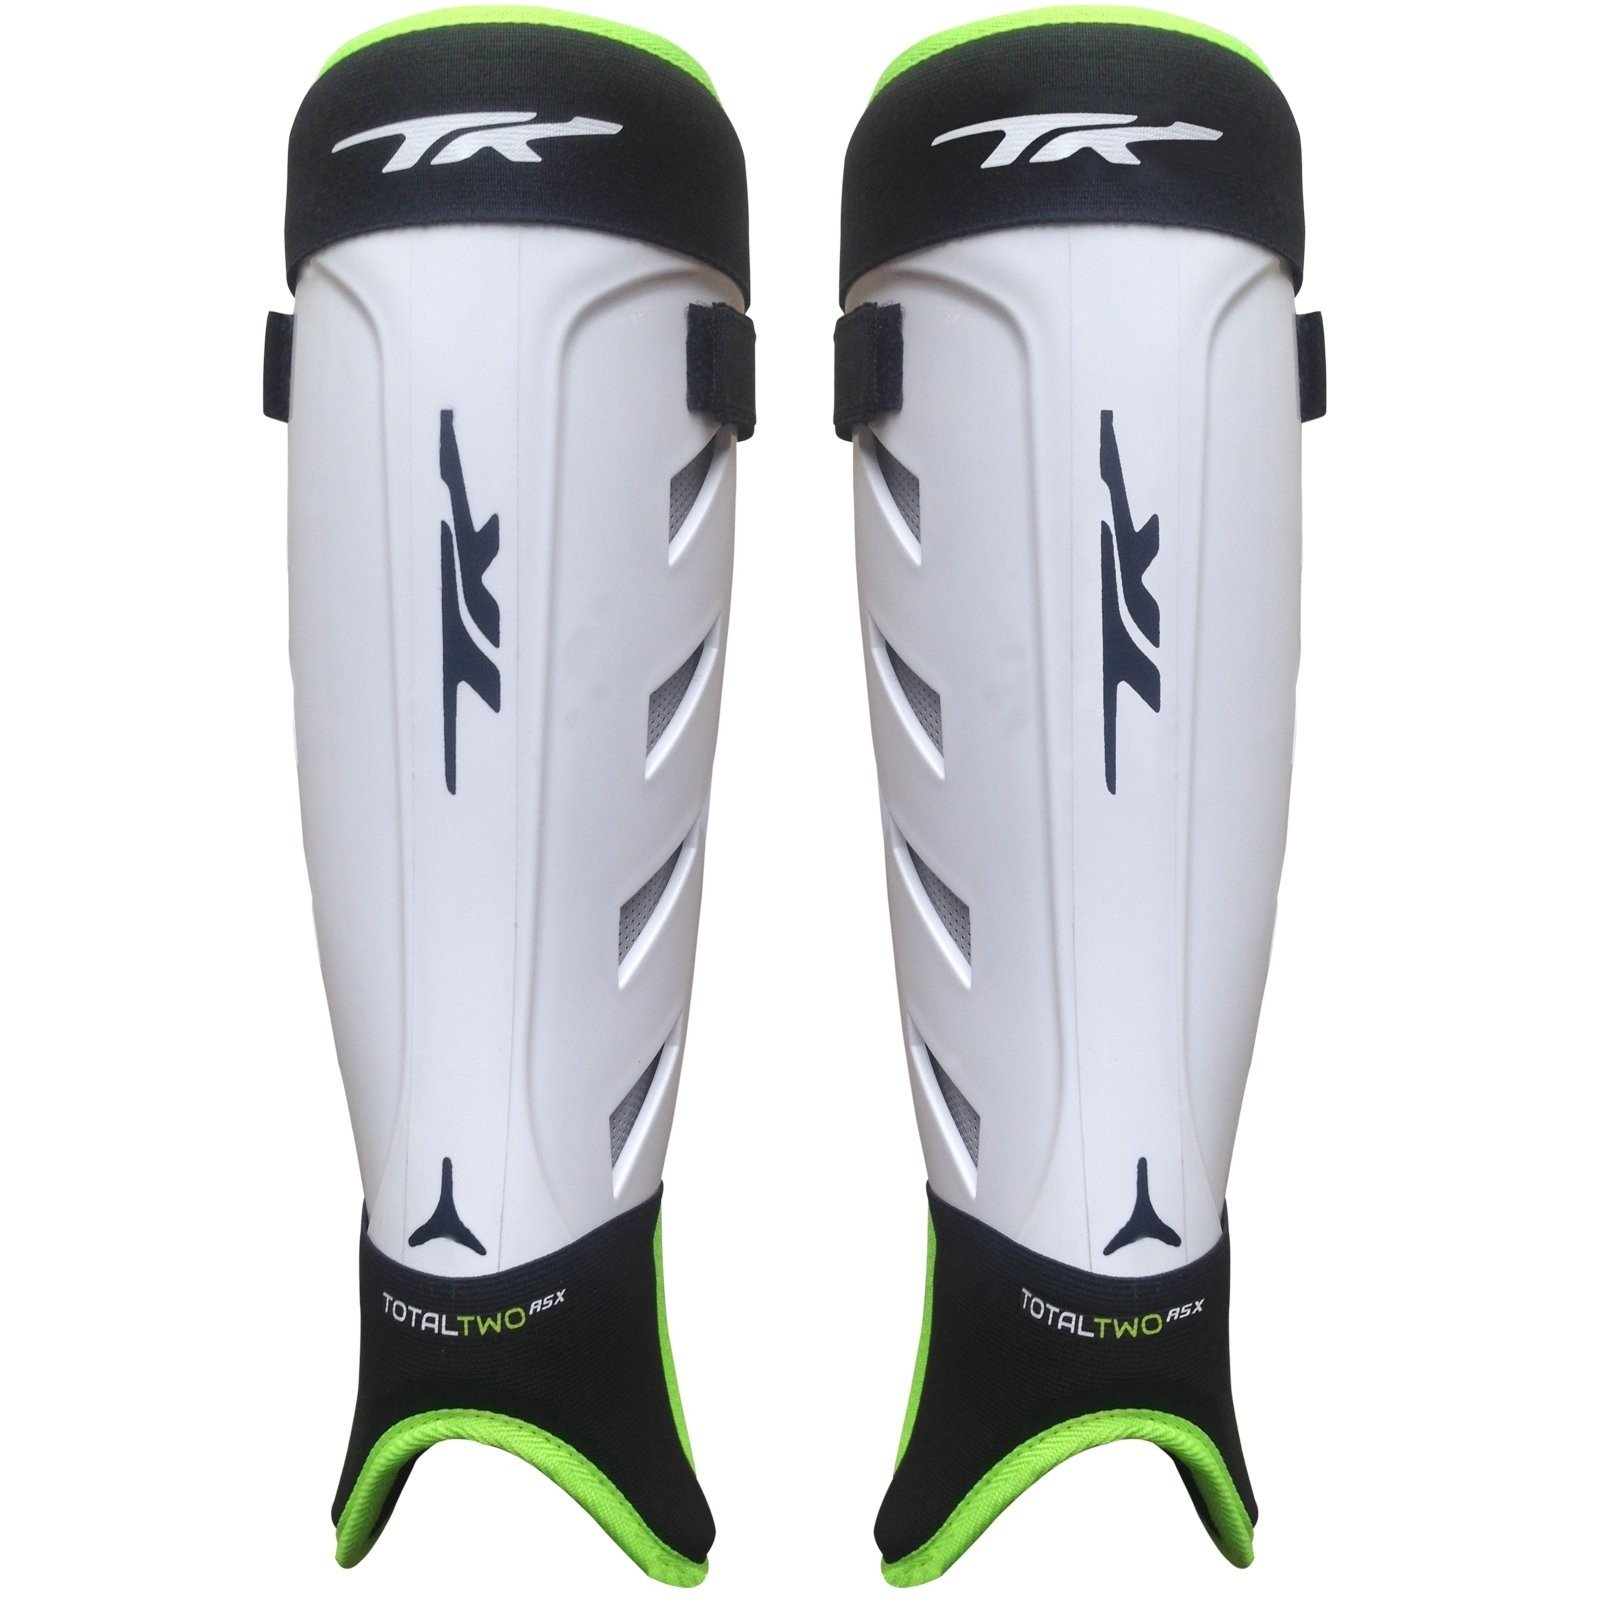 2017/18 TK Total Two ASX 2.1 Hockey Shin Guard